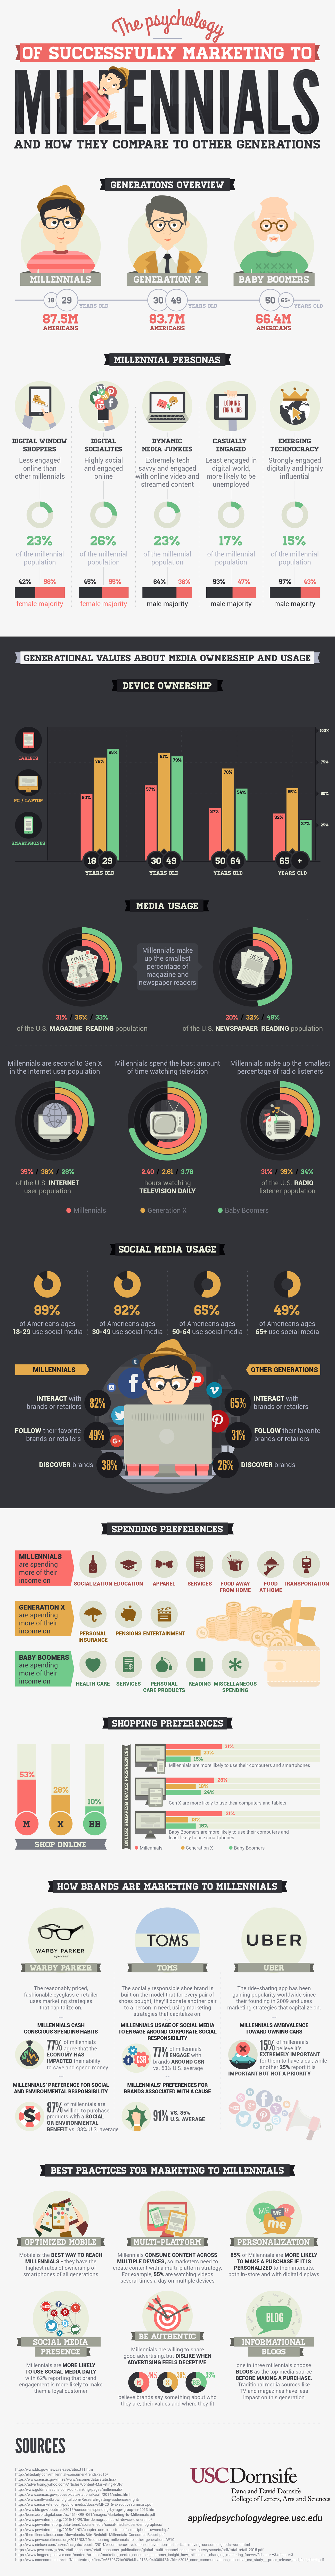 The Psychology of Successfully Marketing to Millennials Infographic